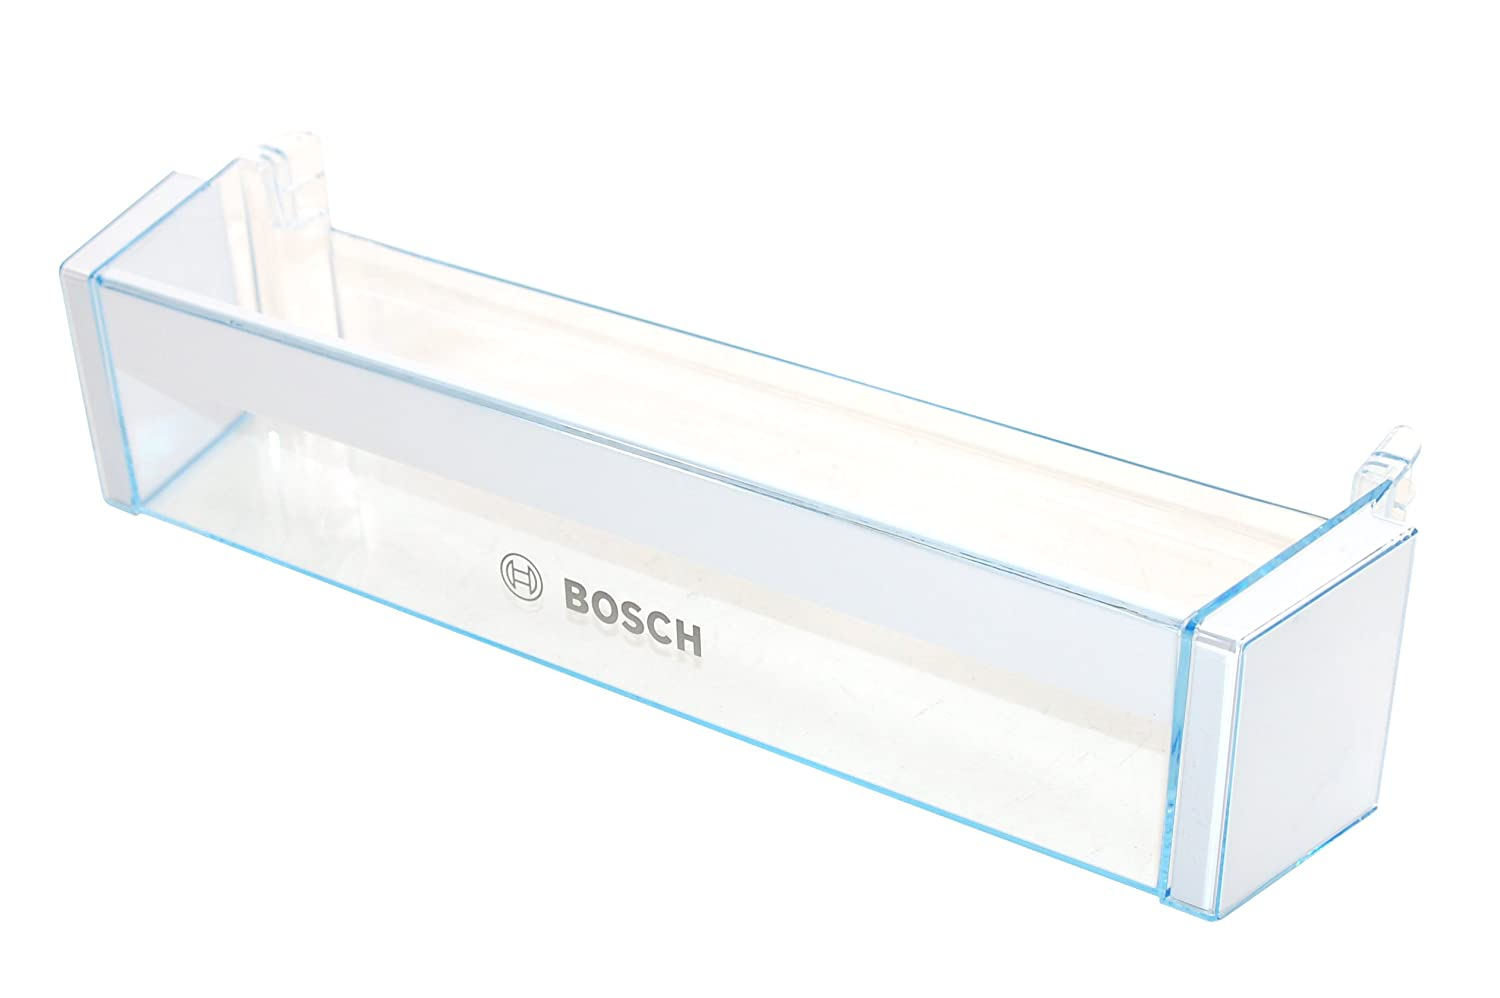 Bosch Refrigeration Bottle Tray. Genuine part number 704406 Bosch 704406